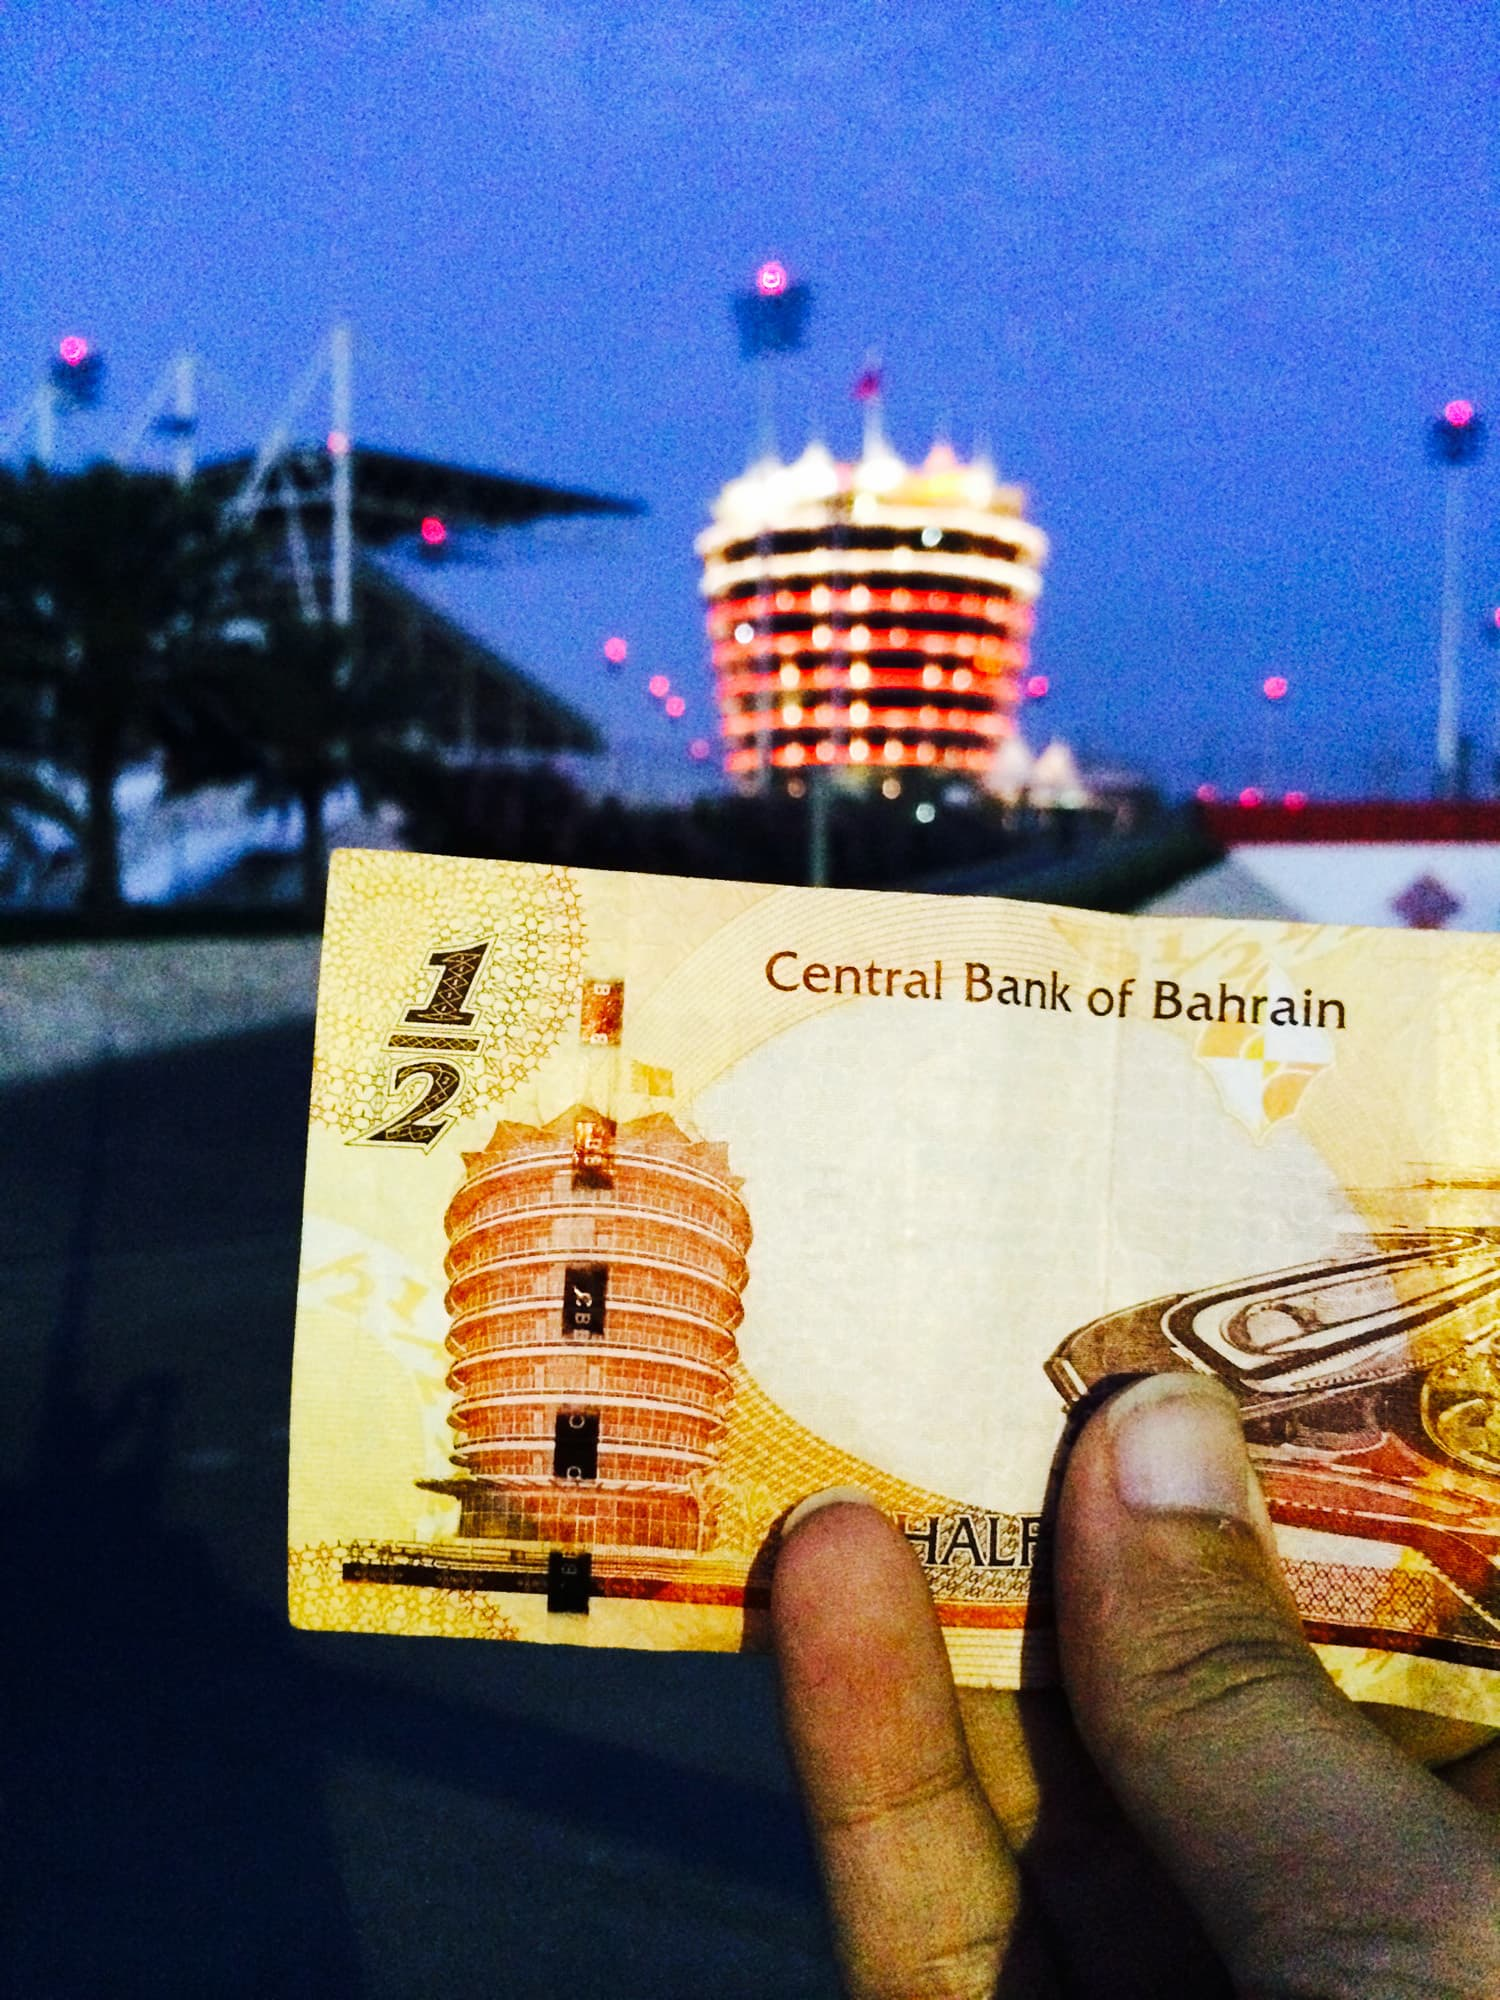 The F1 circuit as seen on the back of the half Dinar banknote of Bahrain.